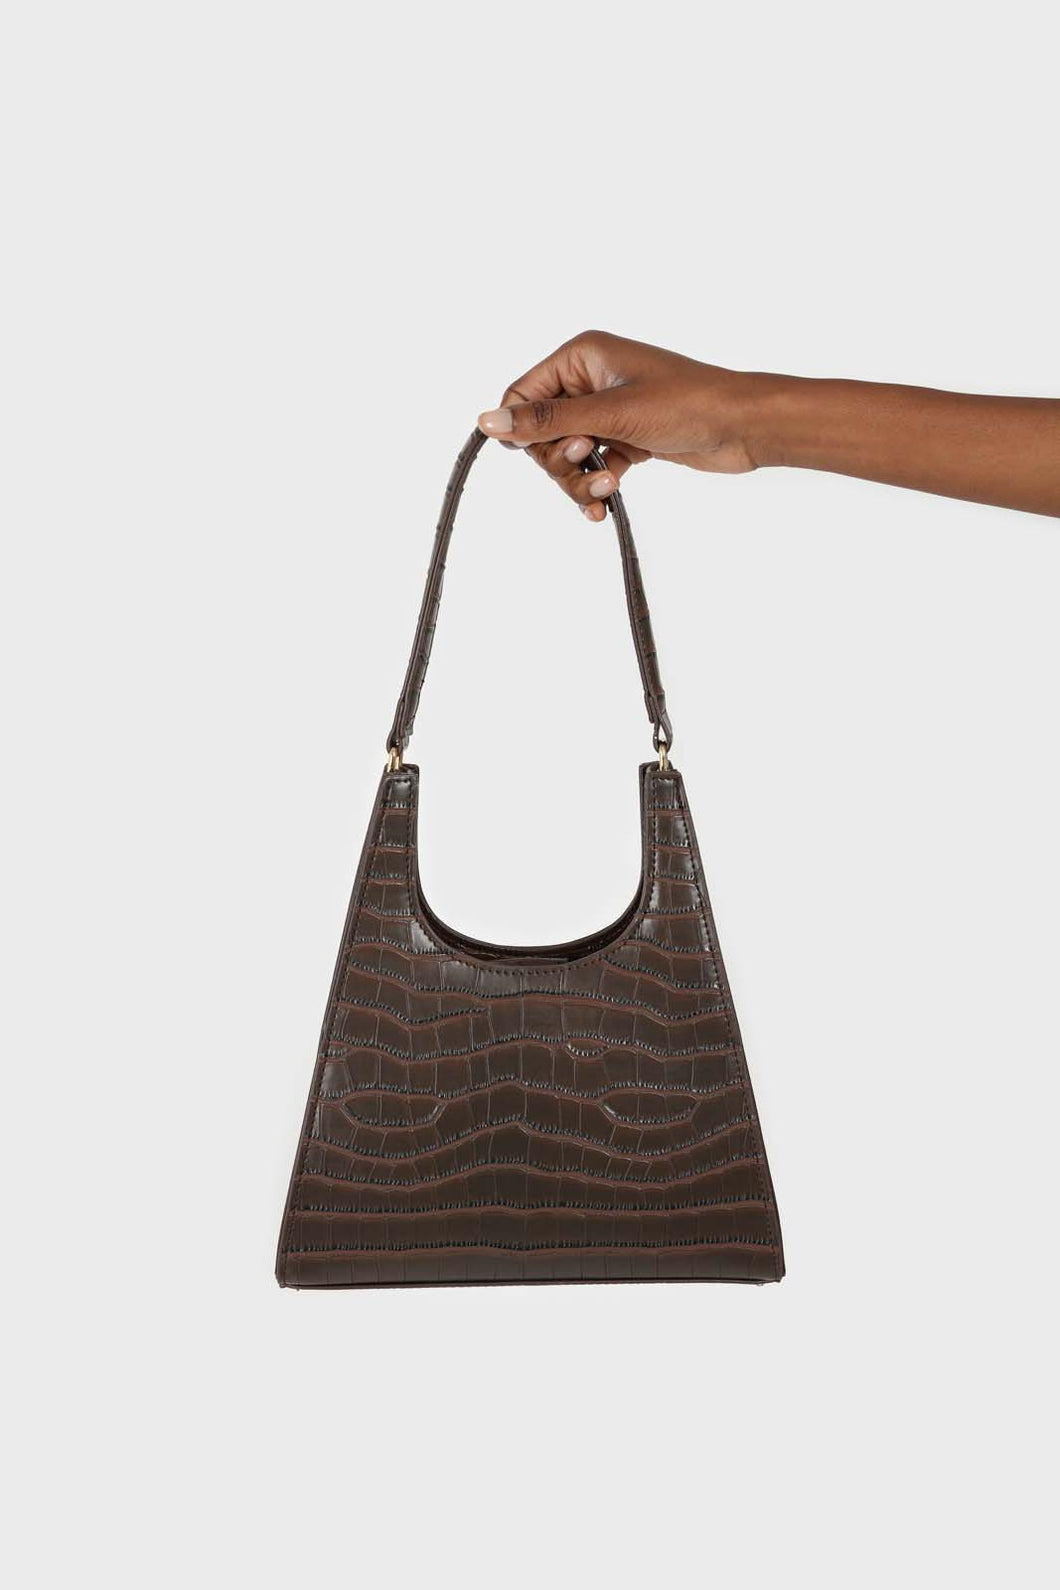 Brown croc skin triangle shoulder bag with chain handle1